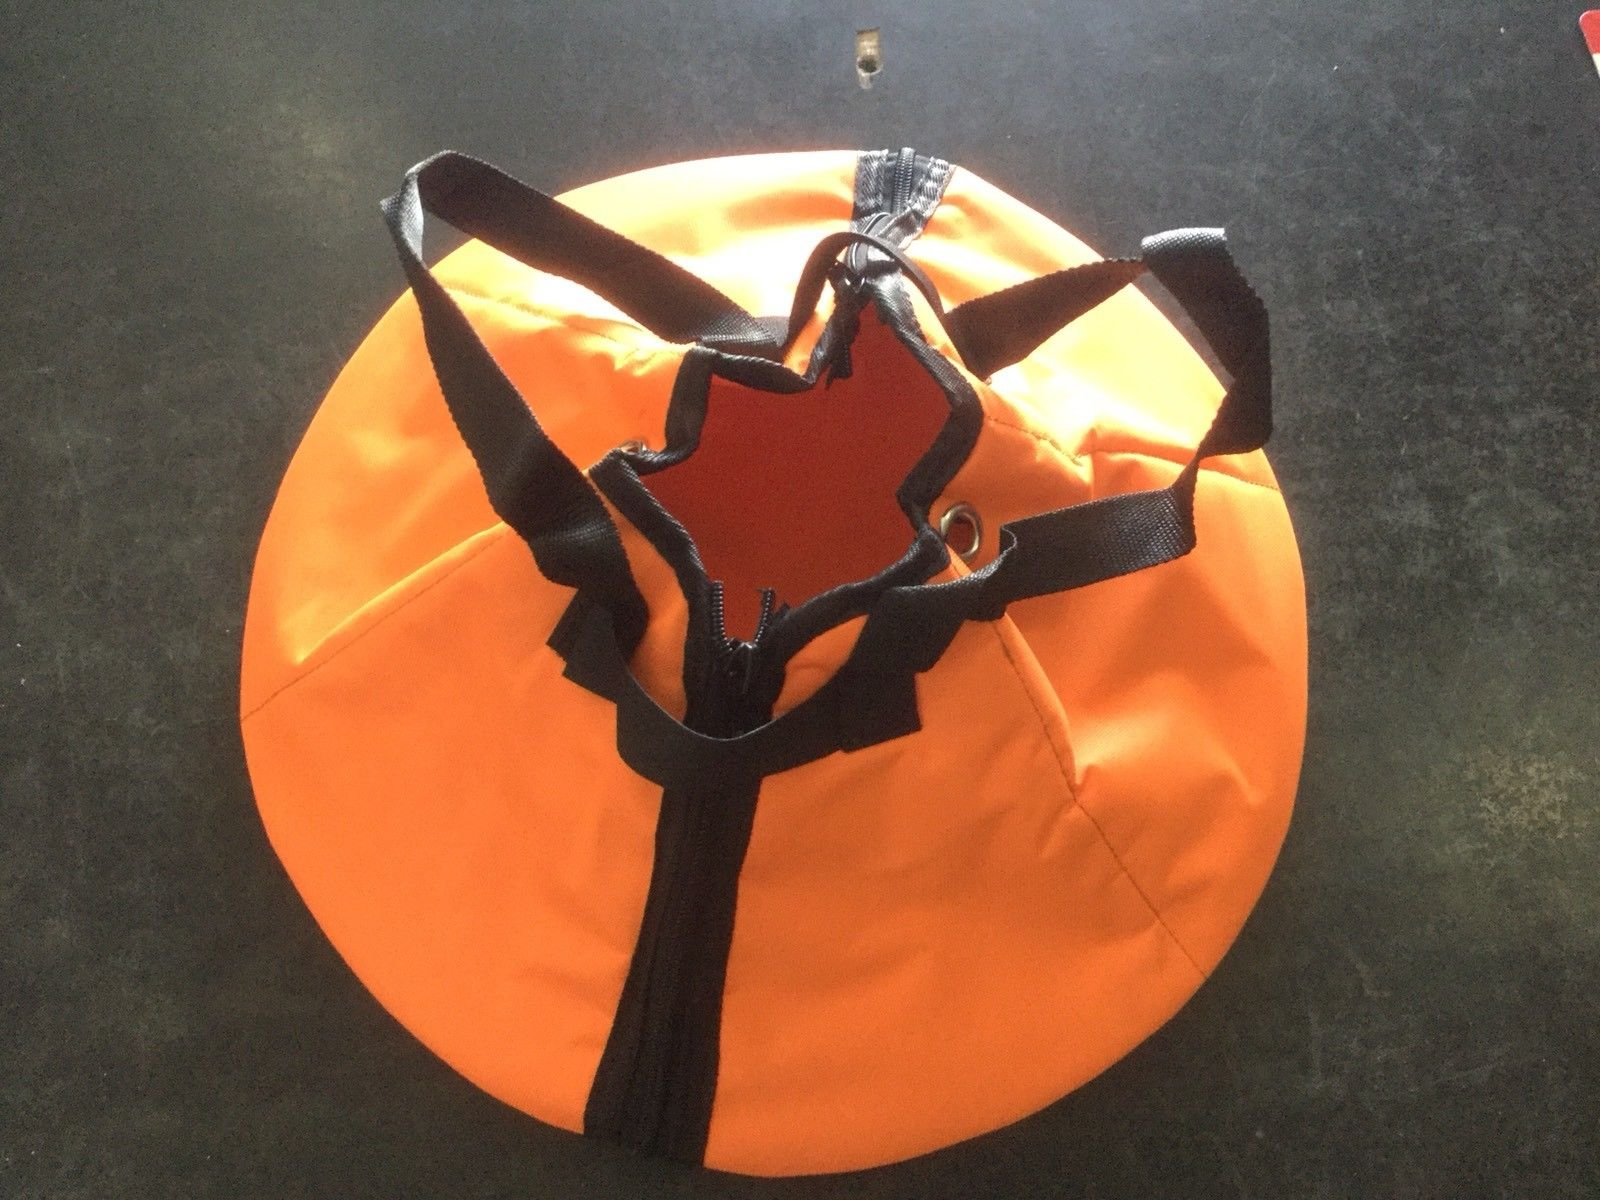 BF75-250 Hp propeller bag for safety whilst towing